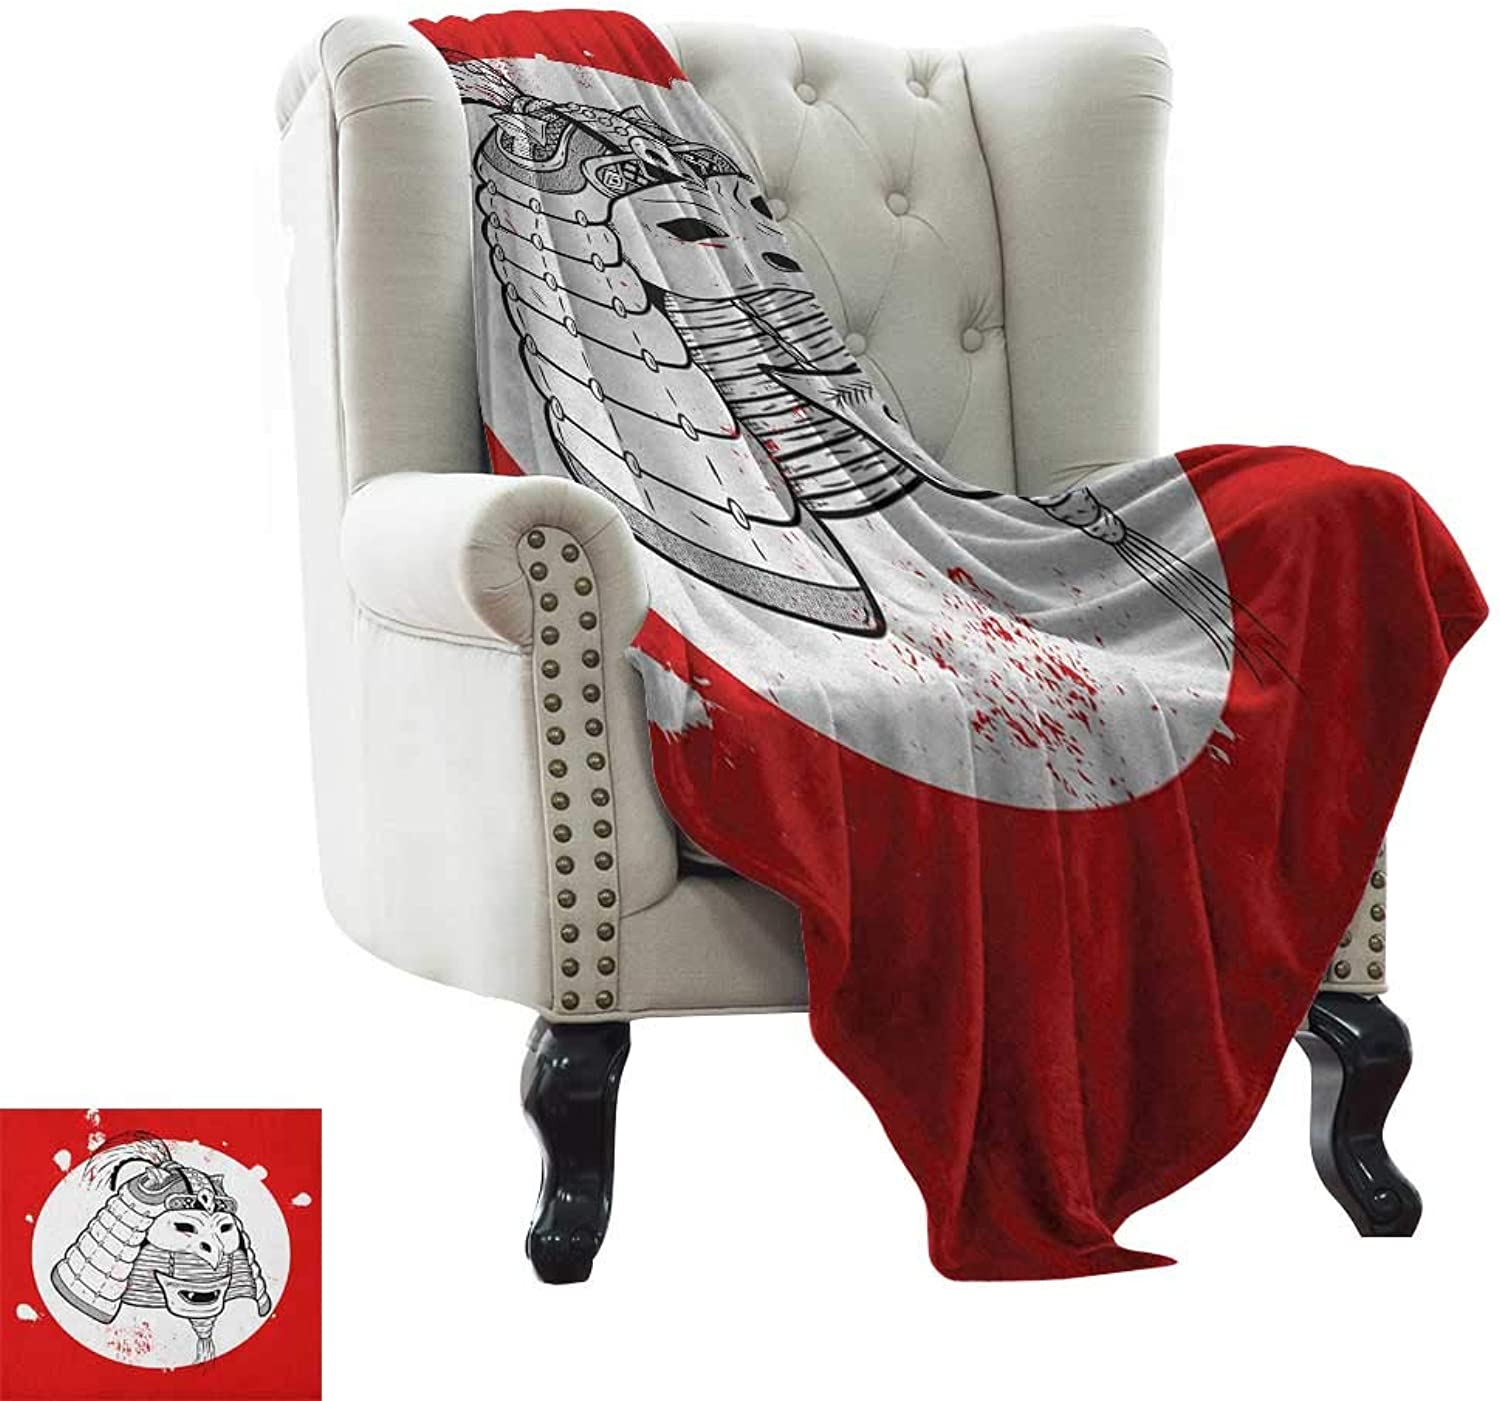 LsWOW Weighted Blanket for Kids Kabuki Mask,Asian Ethnic Mask Design with Grunge Stained Look Ronin Fighter Face, Red White and Black Reversible Soft Fabric for Couch Sofa Easy Care 50 x60